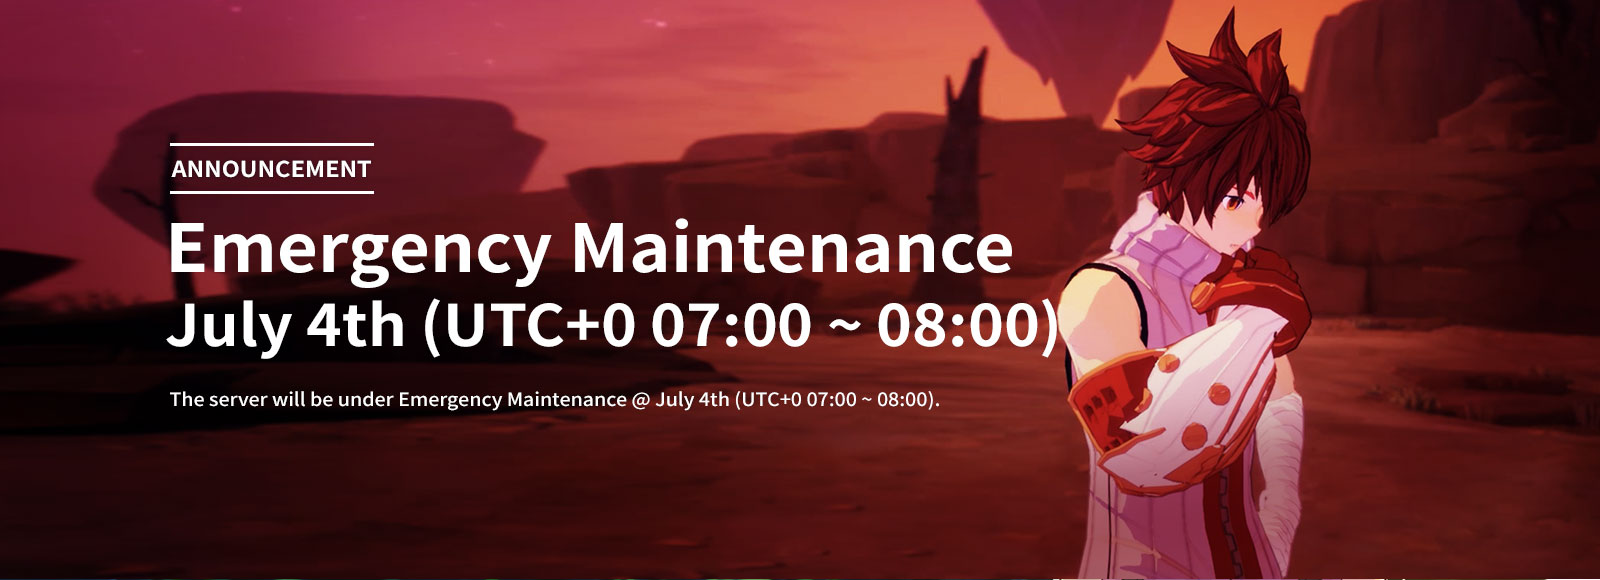 July 4th Emergency Maintenance Announcement